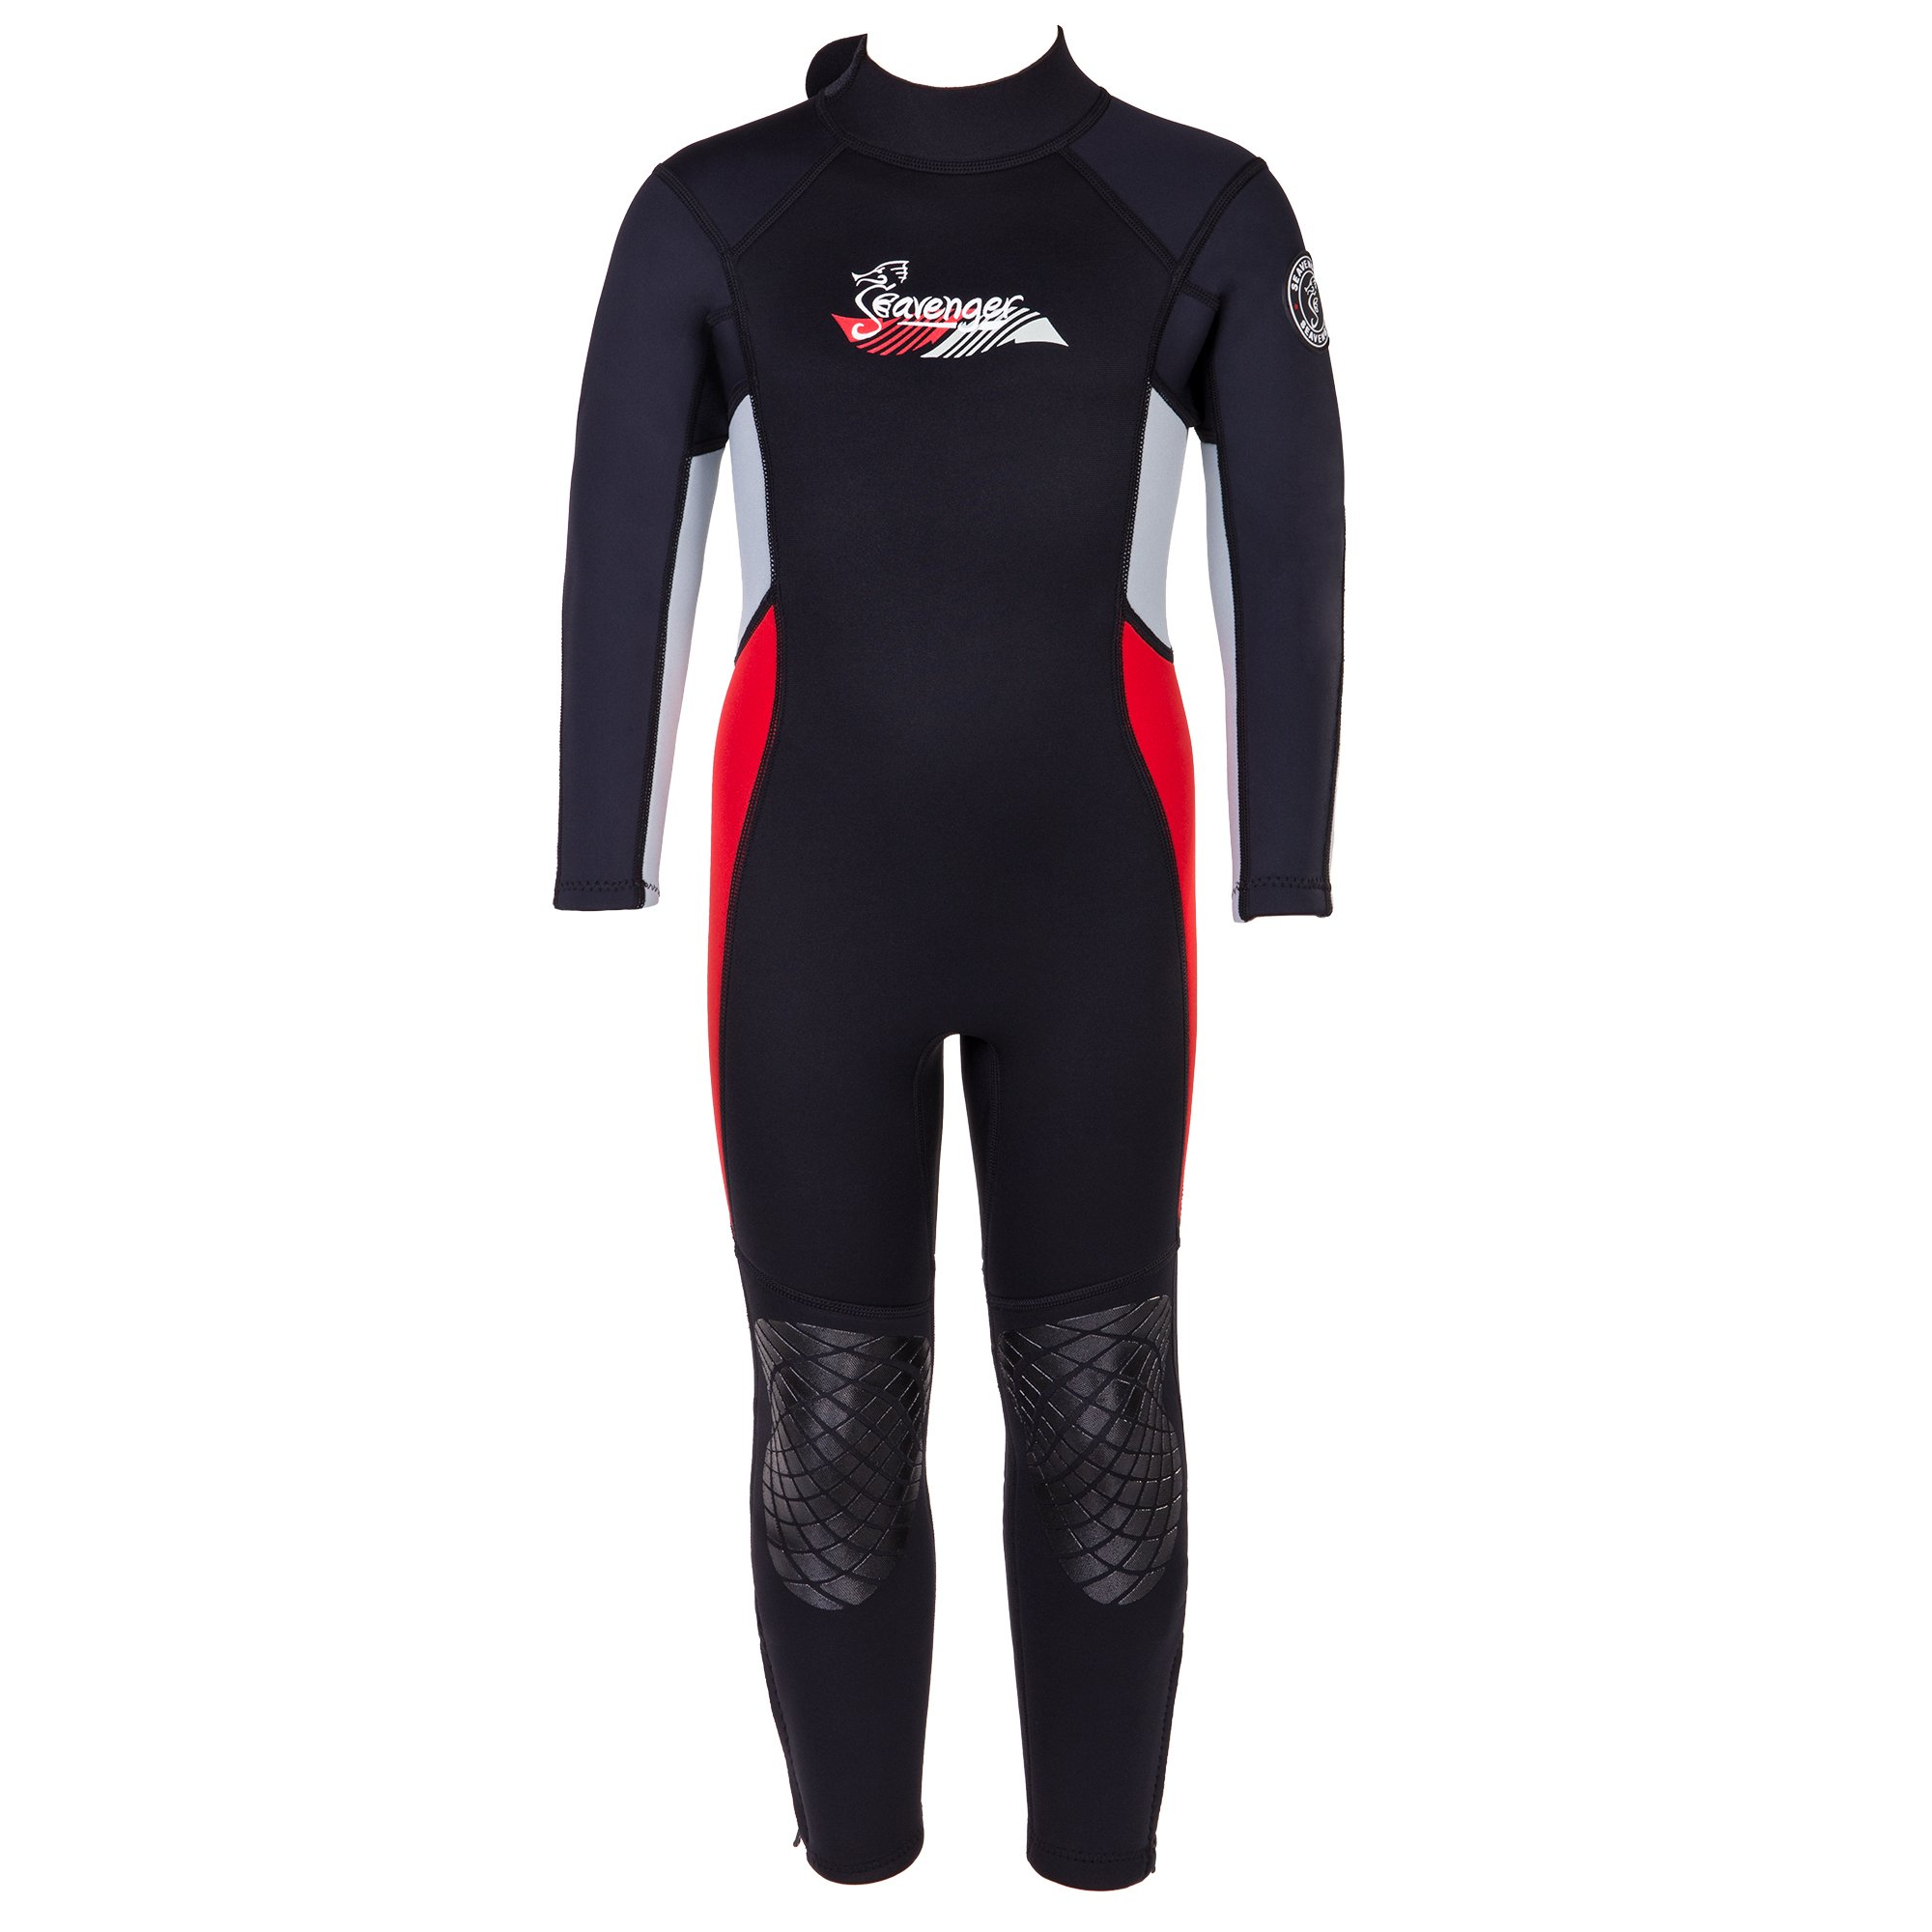 Seavenger Scout 3mm Kids Wetsuit | Full Body Neoprene Suit for Snorkeling, Swimming, Diving (Fire Red, 10) by Seavenger (Image #1)